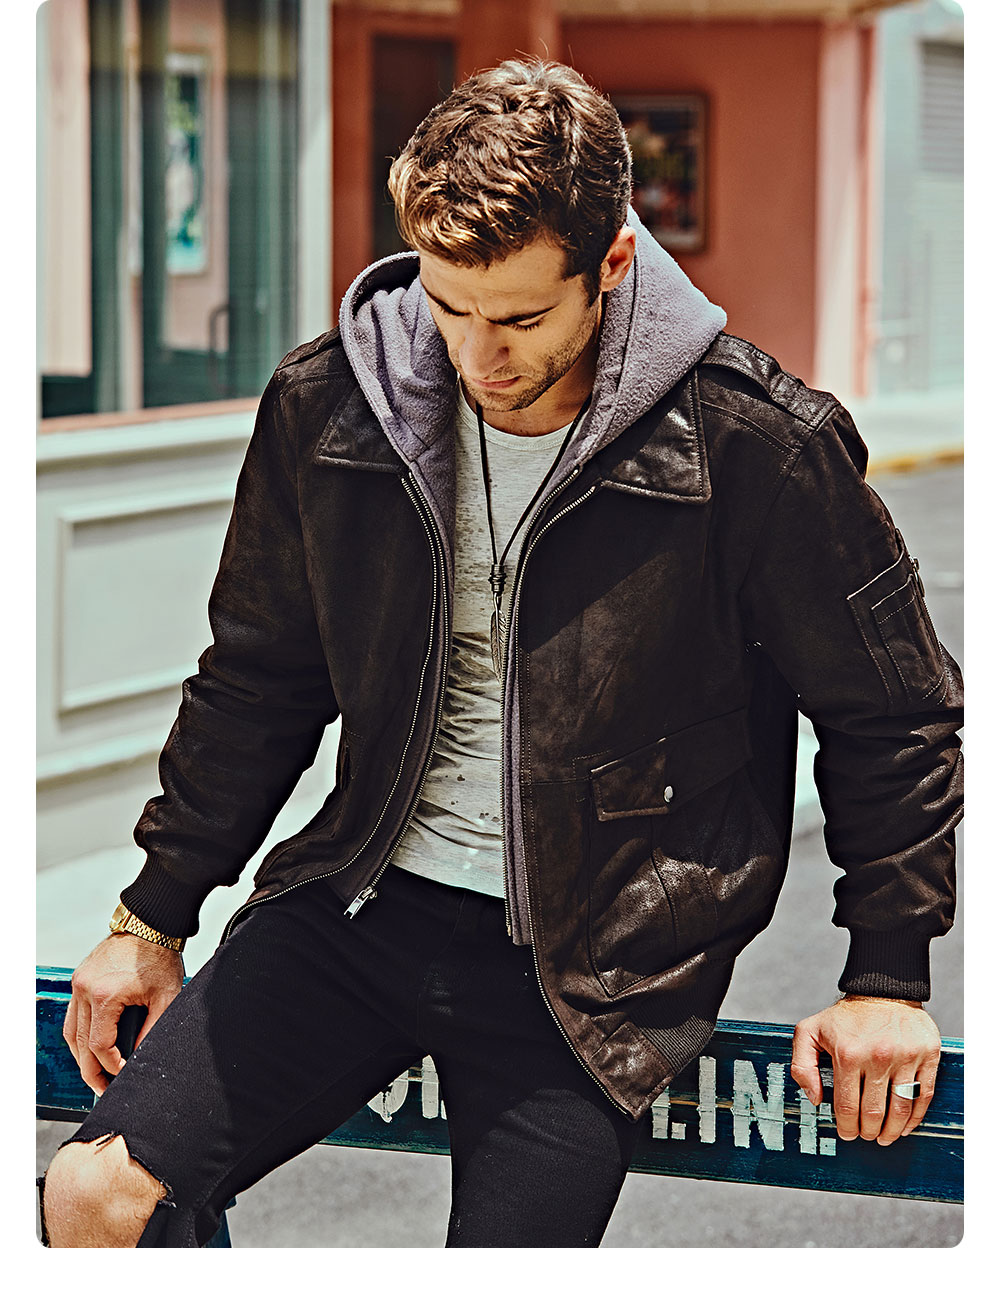 H92c1aca044c64e3bb0f331c19da51e07A FLAVOR New Men's Genuine Leather Bomber Jackets Removable Hood Men Air Forca Aviator winter coat Men Warm Real Leather Jacket